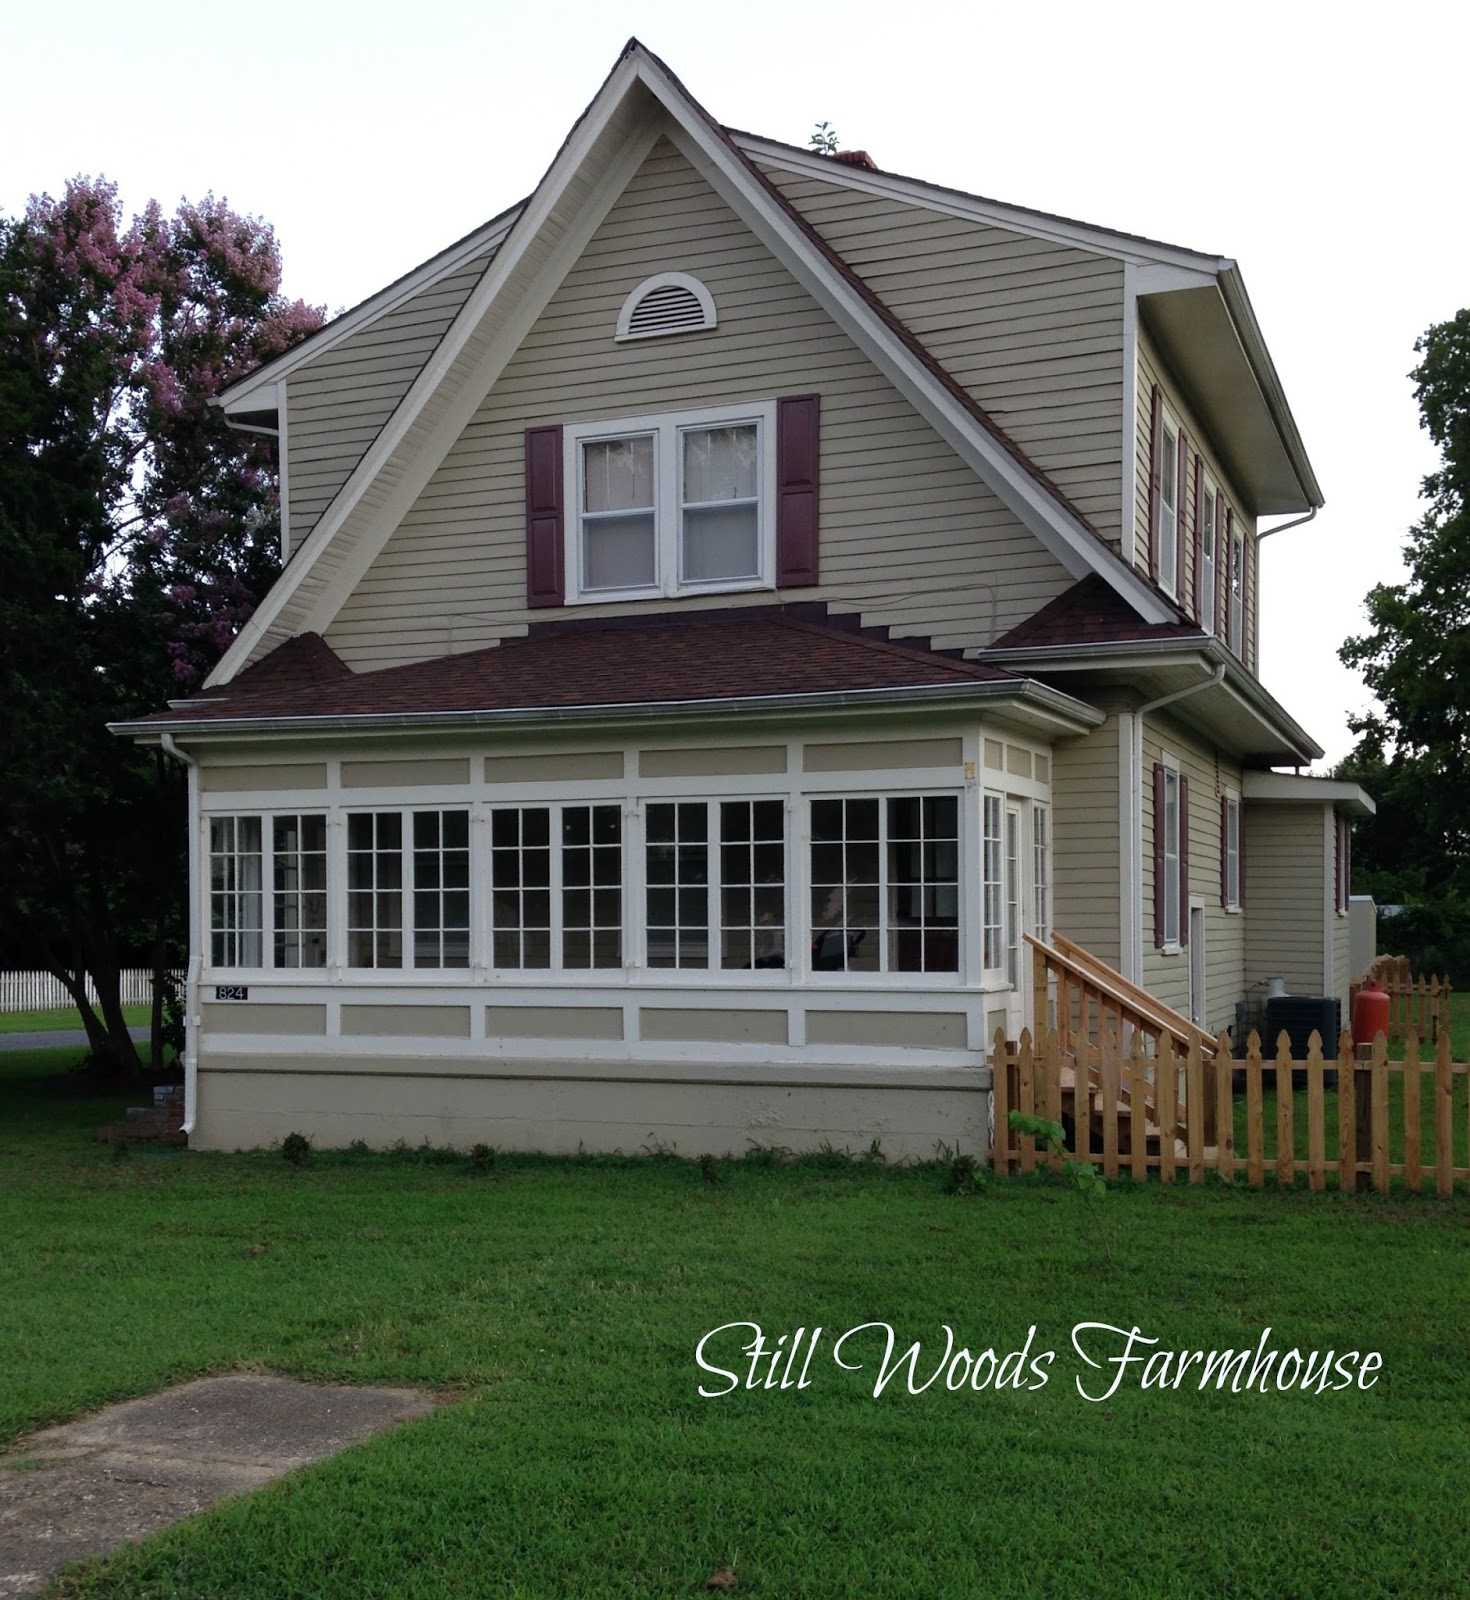 Still Woods Farmhouse July 2015